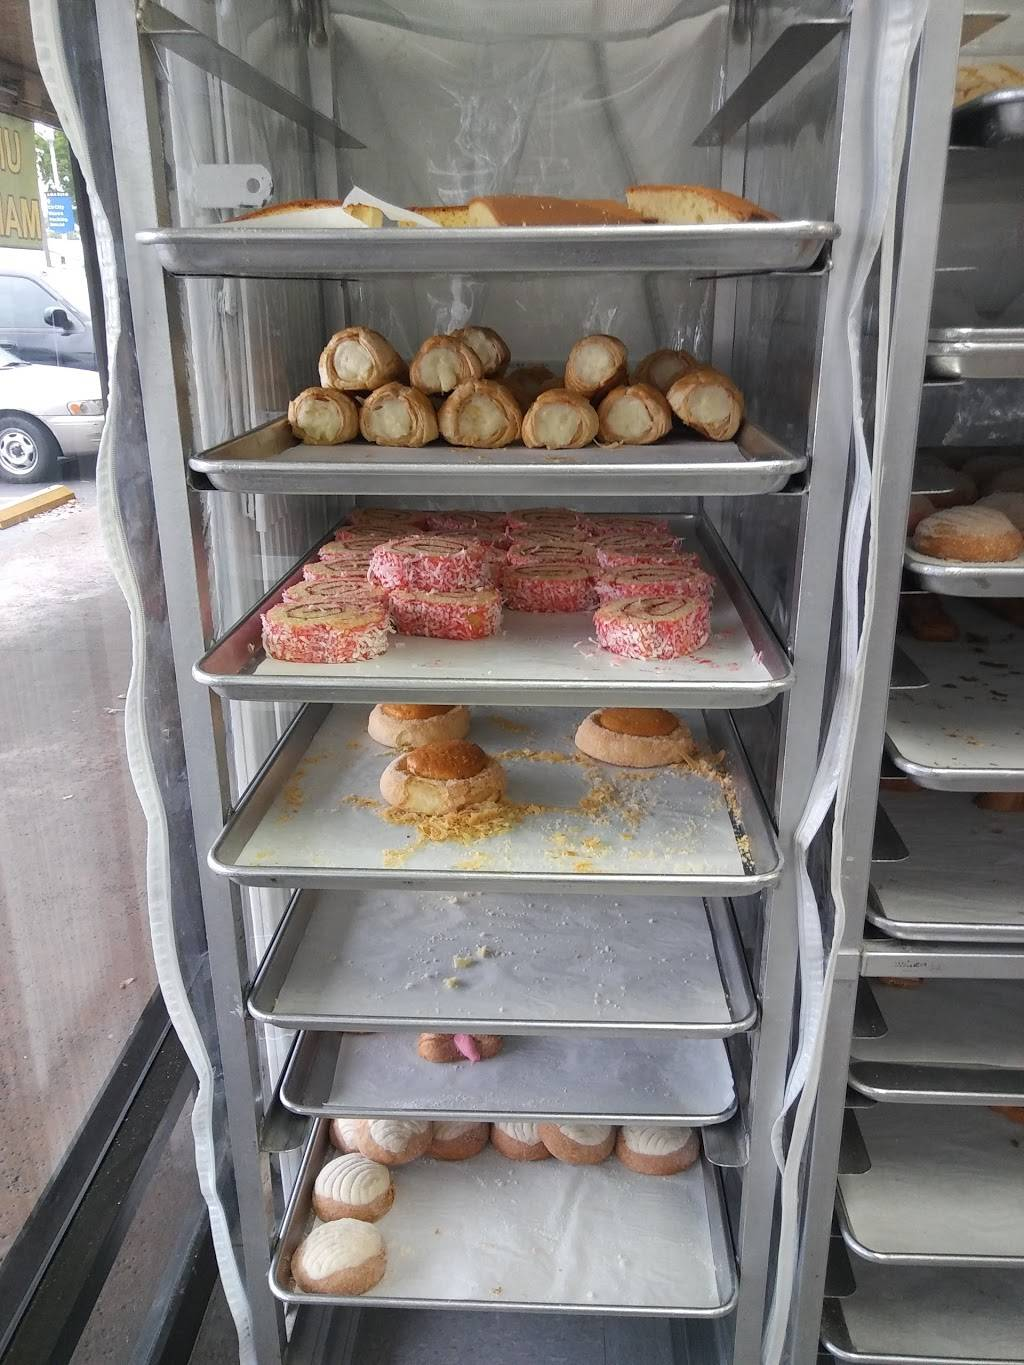 Panaderia La Pequeña | bakery | 888 W Lincoln Ave, Anaheim, CA 92805, USA | 7148178254 OR +1 714-817-8254